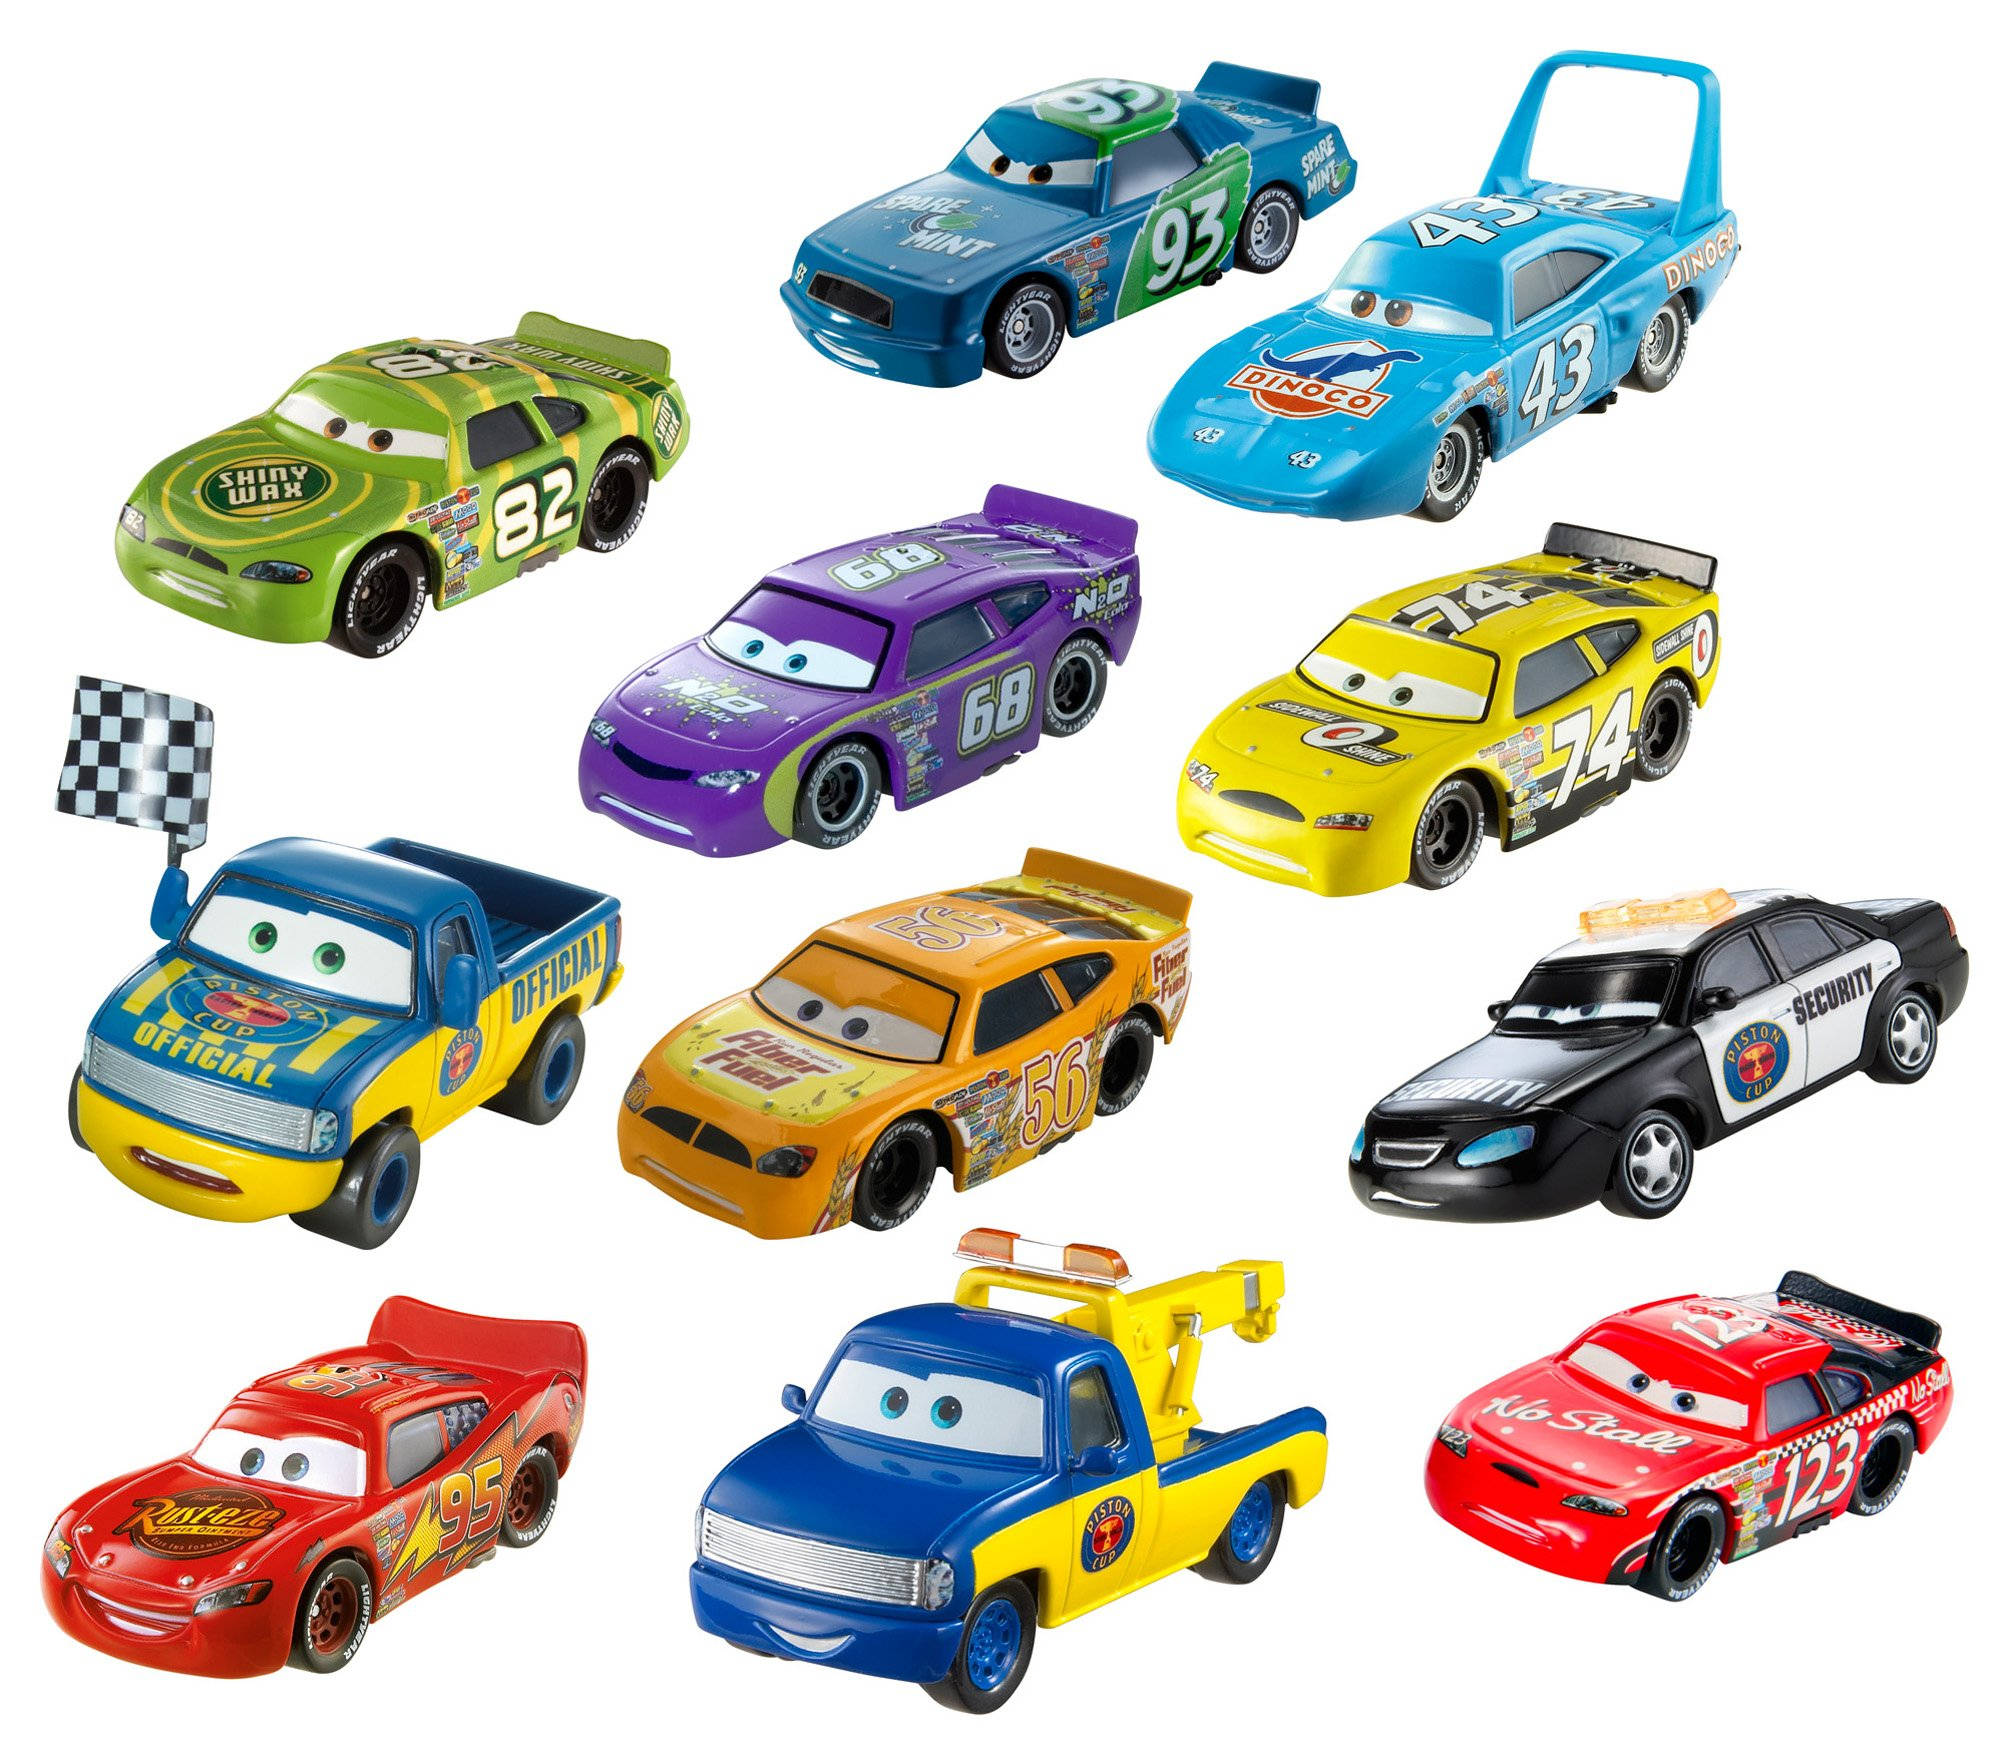 Disney/Pixar Cars Diecast Car Collection, 11-Pack